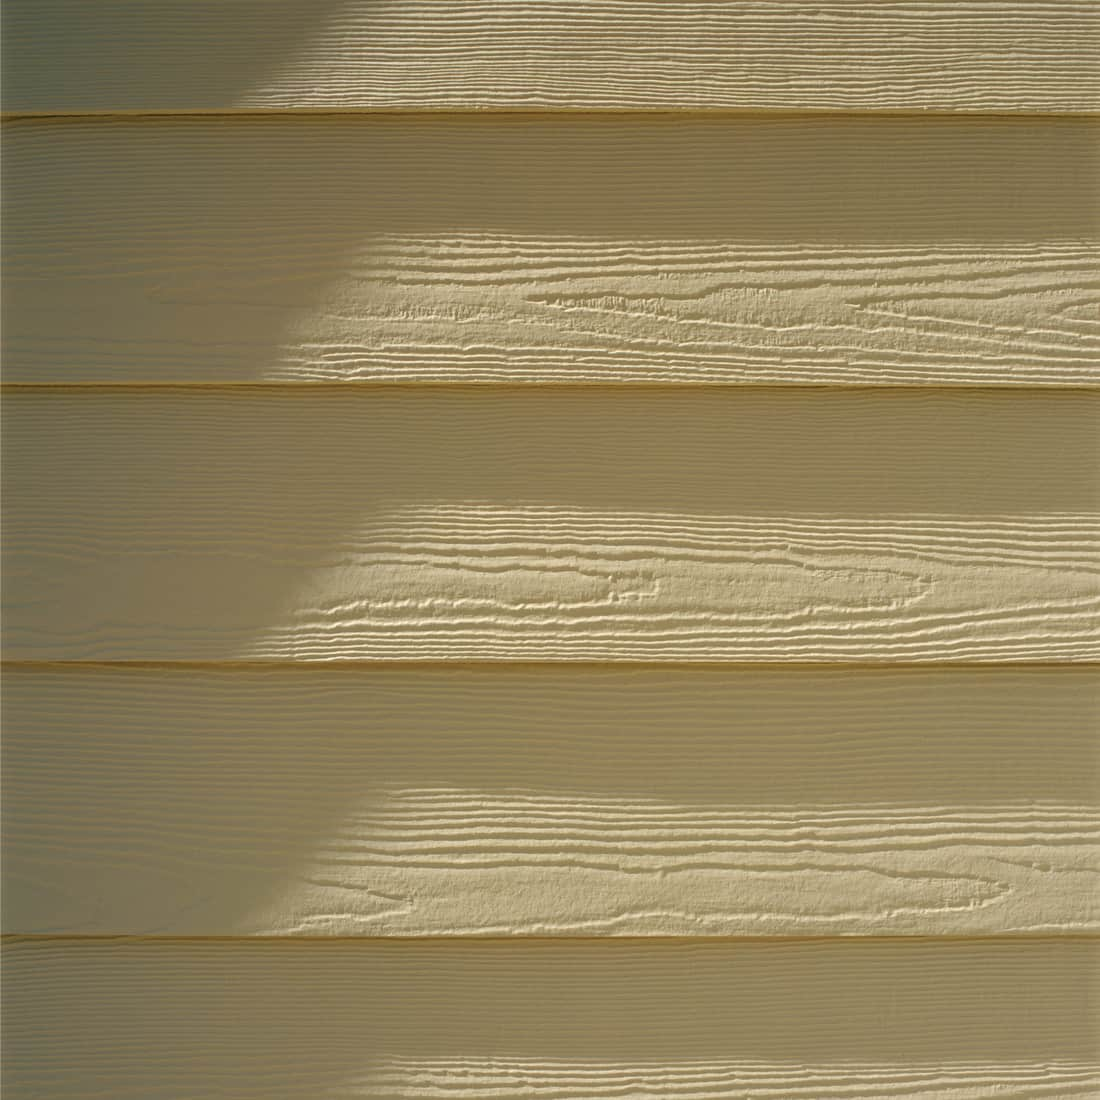 Detail of painted engineered composite wood siding